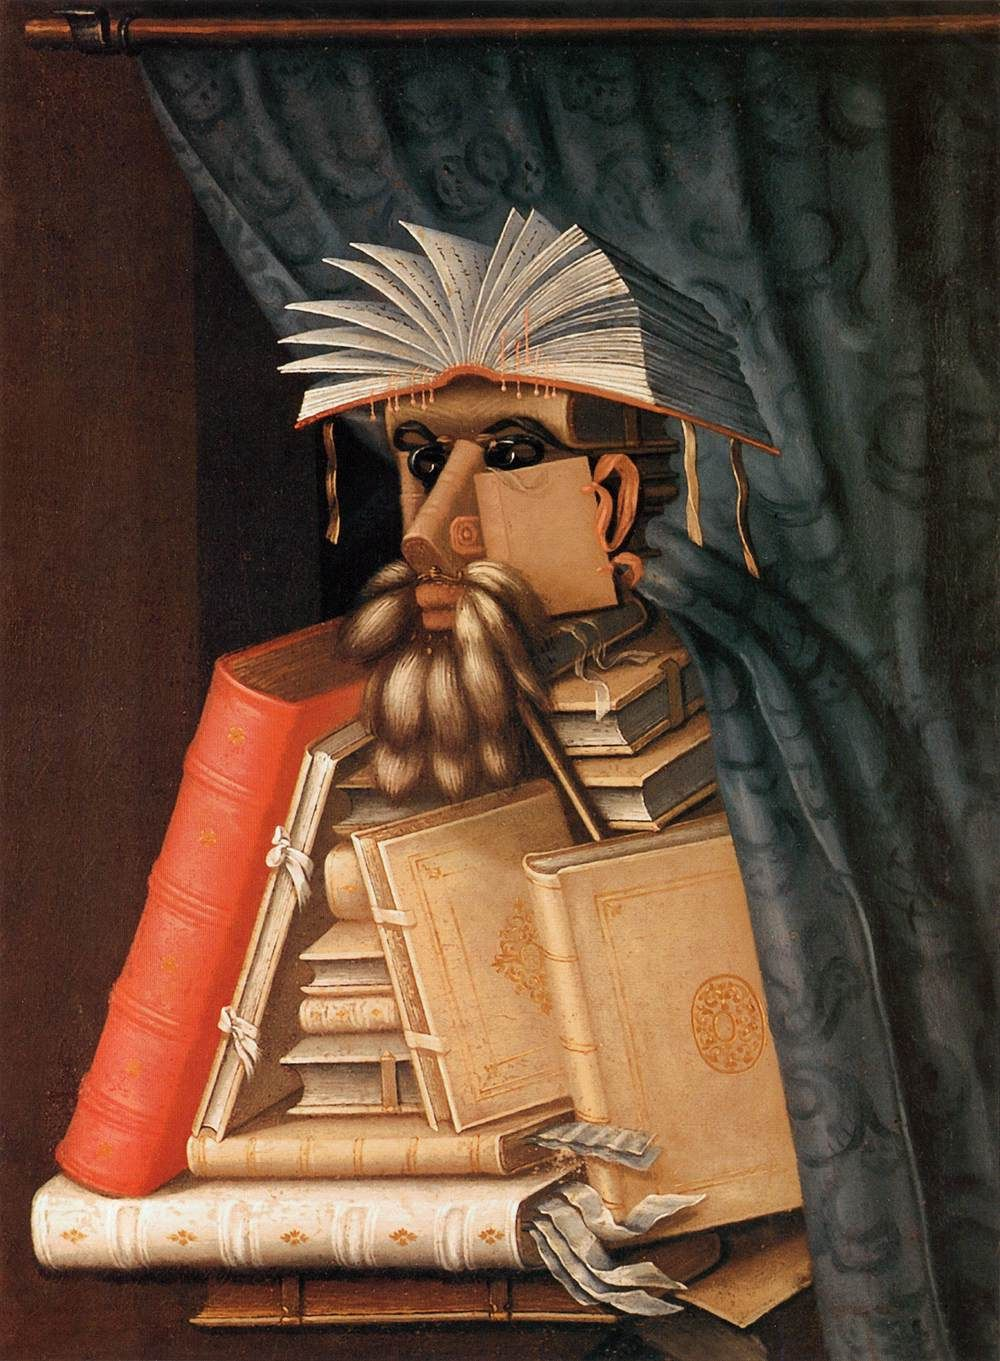 Giuseppe Arcimboldo pioneered a unique style of portraiture, creating faces out of objects like The Librarian (1566)